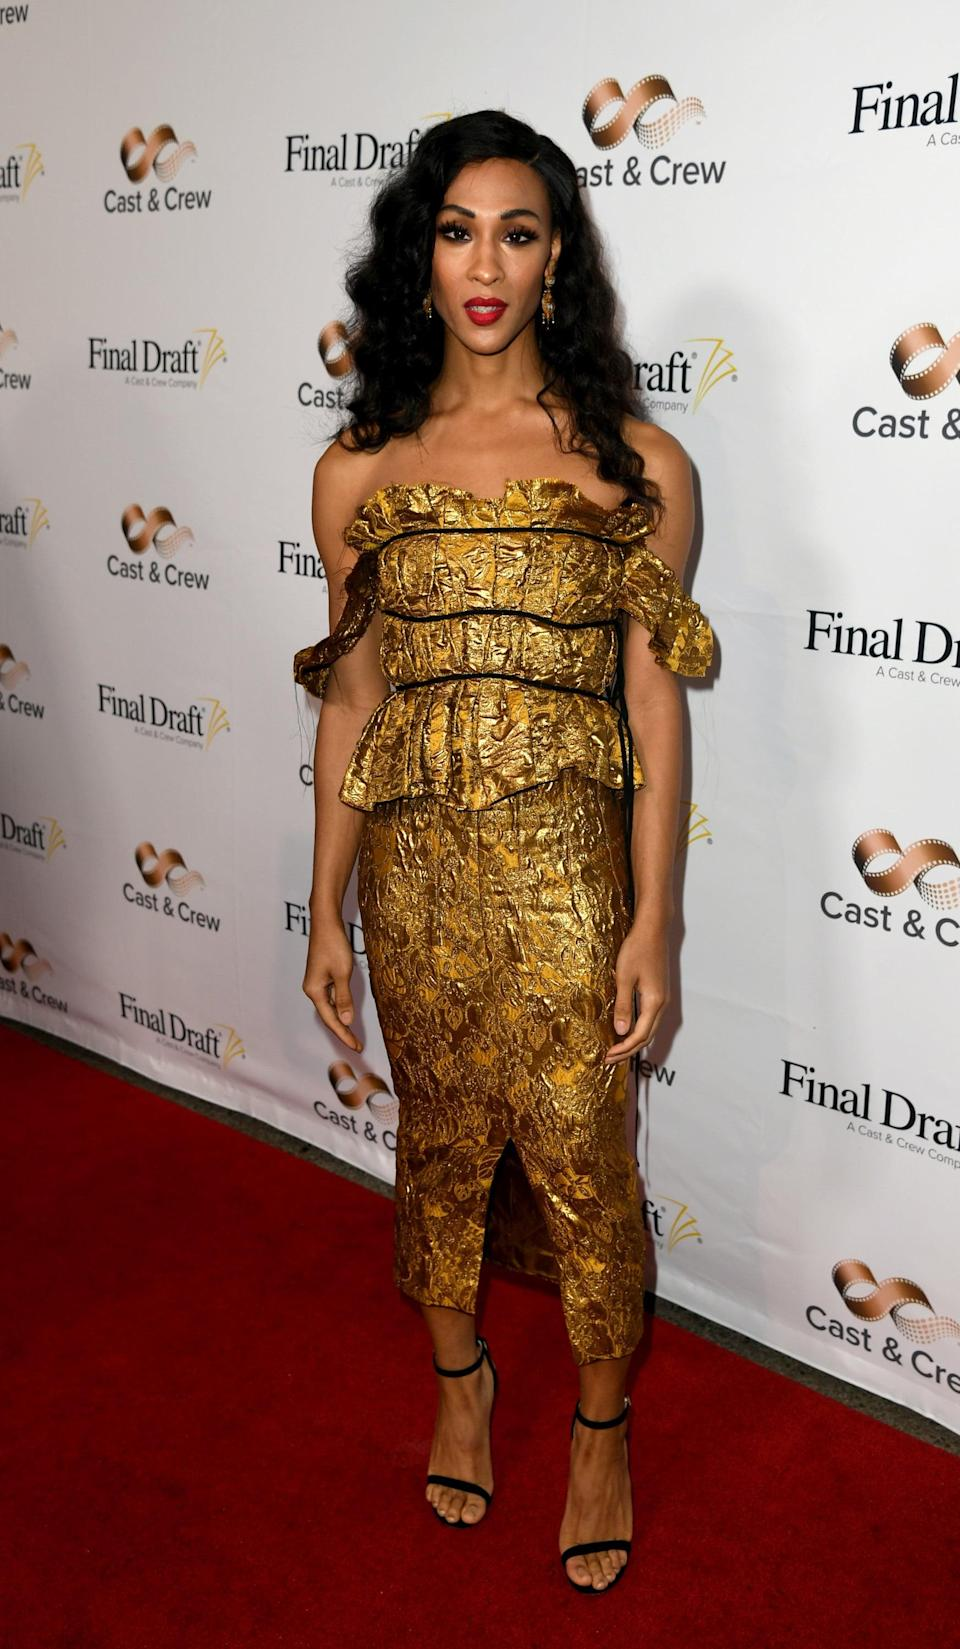 <p>Mj needed nothing but simple Jimmy Choo sandals to accessorize this jacquard midi at the 15th Annual Final Draft Awards in January 2020.</p>